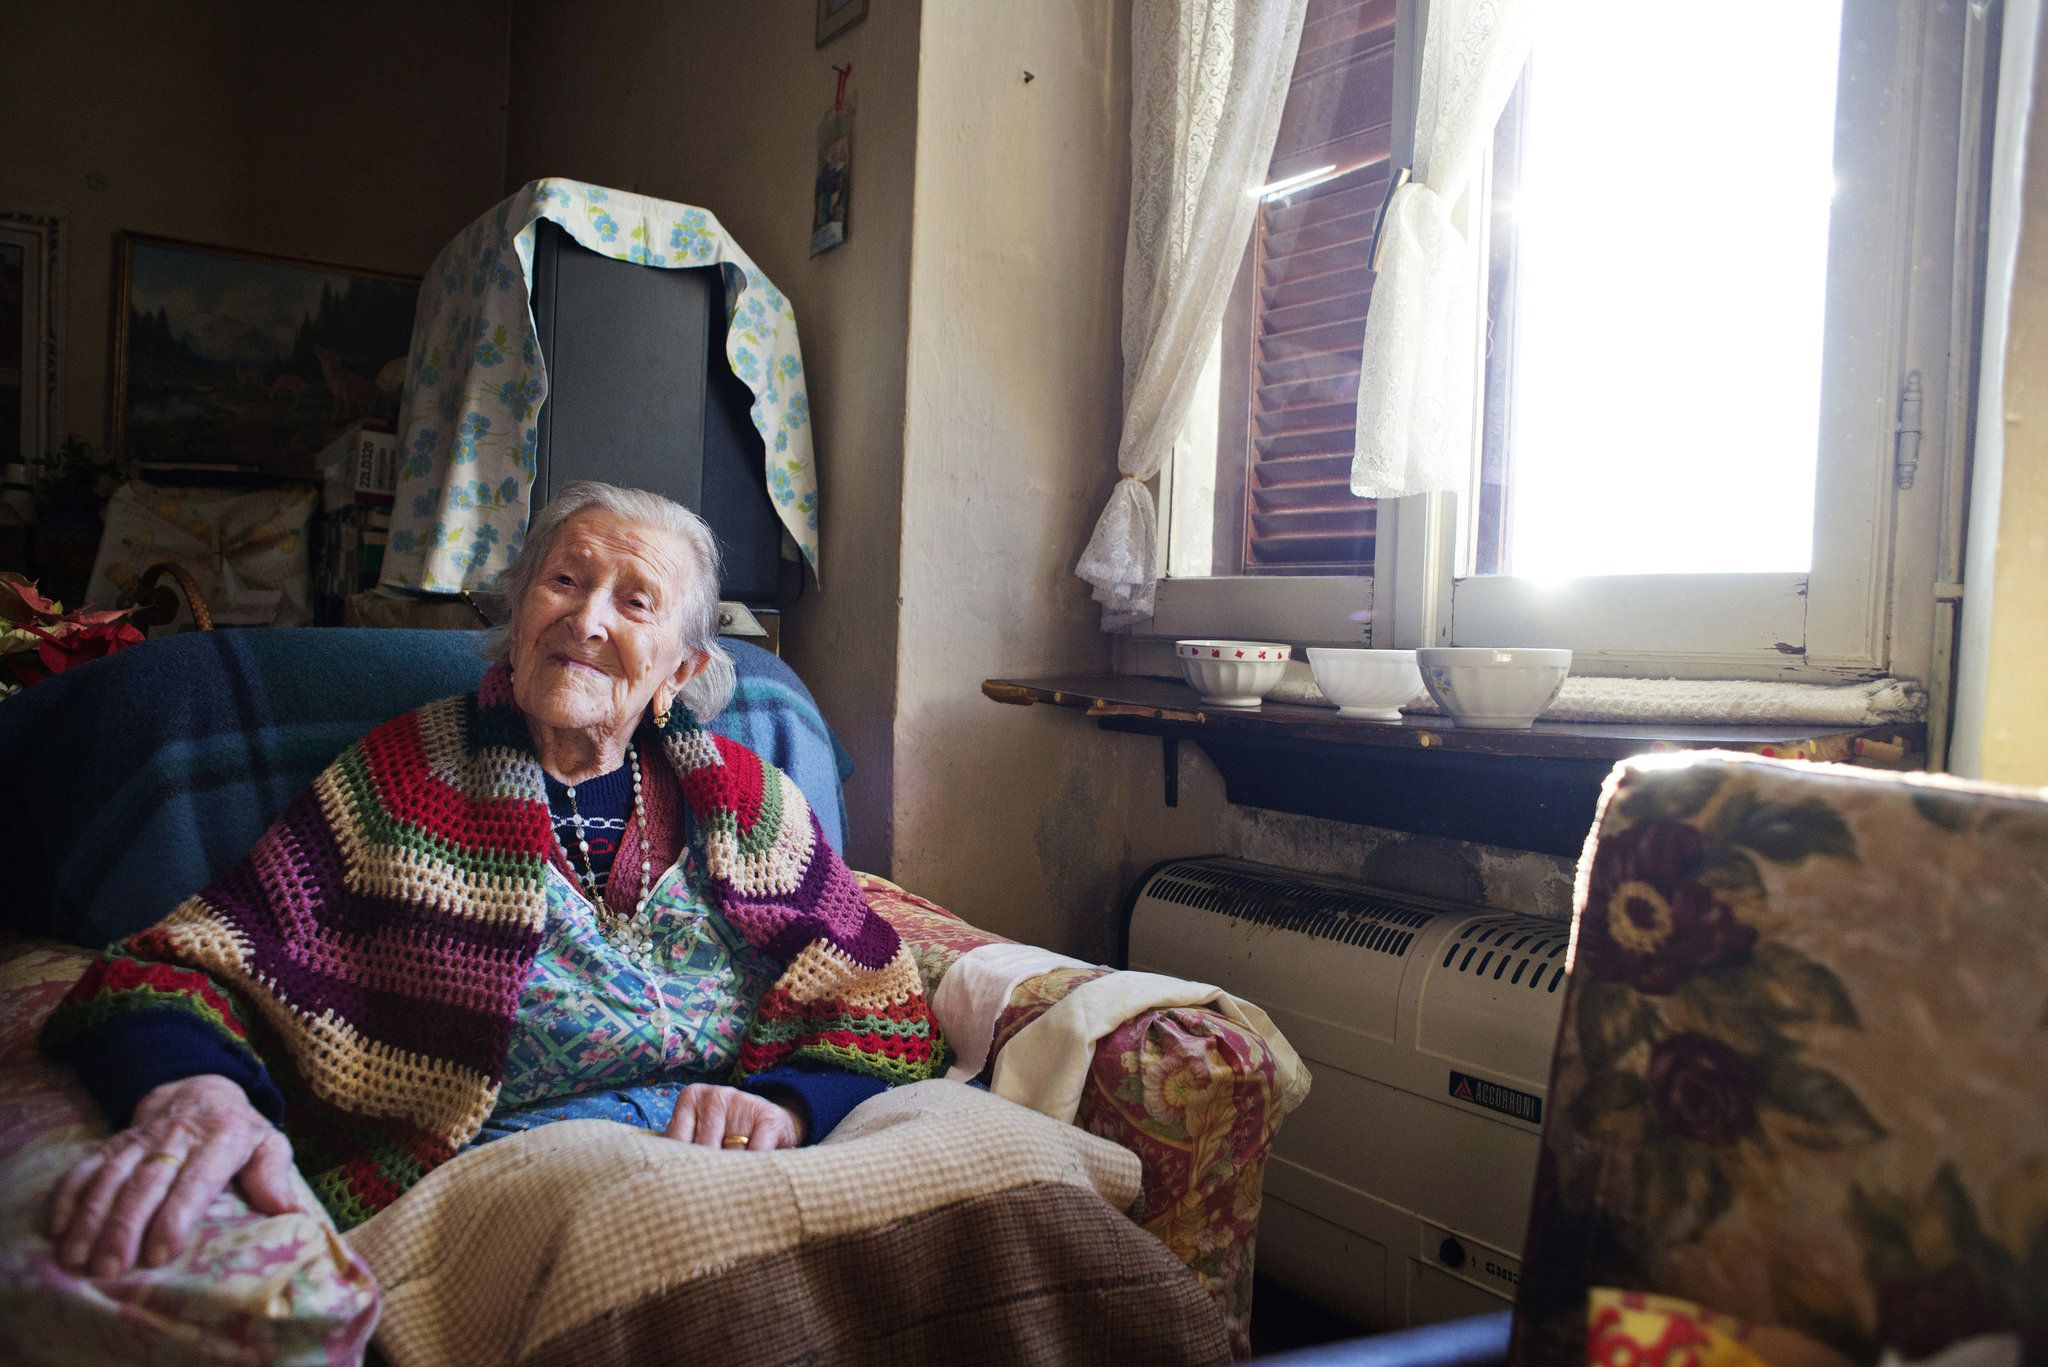 Emma Morano's singular achievement in life may have been perseverance. She lived for 117 years, crediting her longevity to raw eggs and her lack of a husband. She died on April 15.